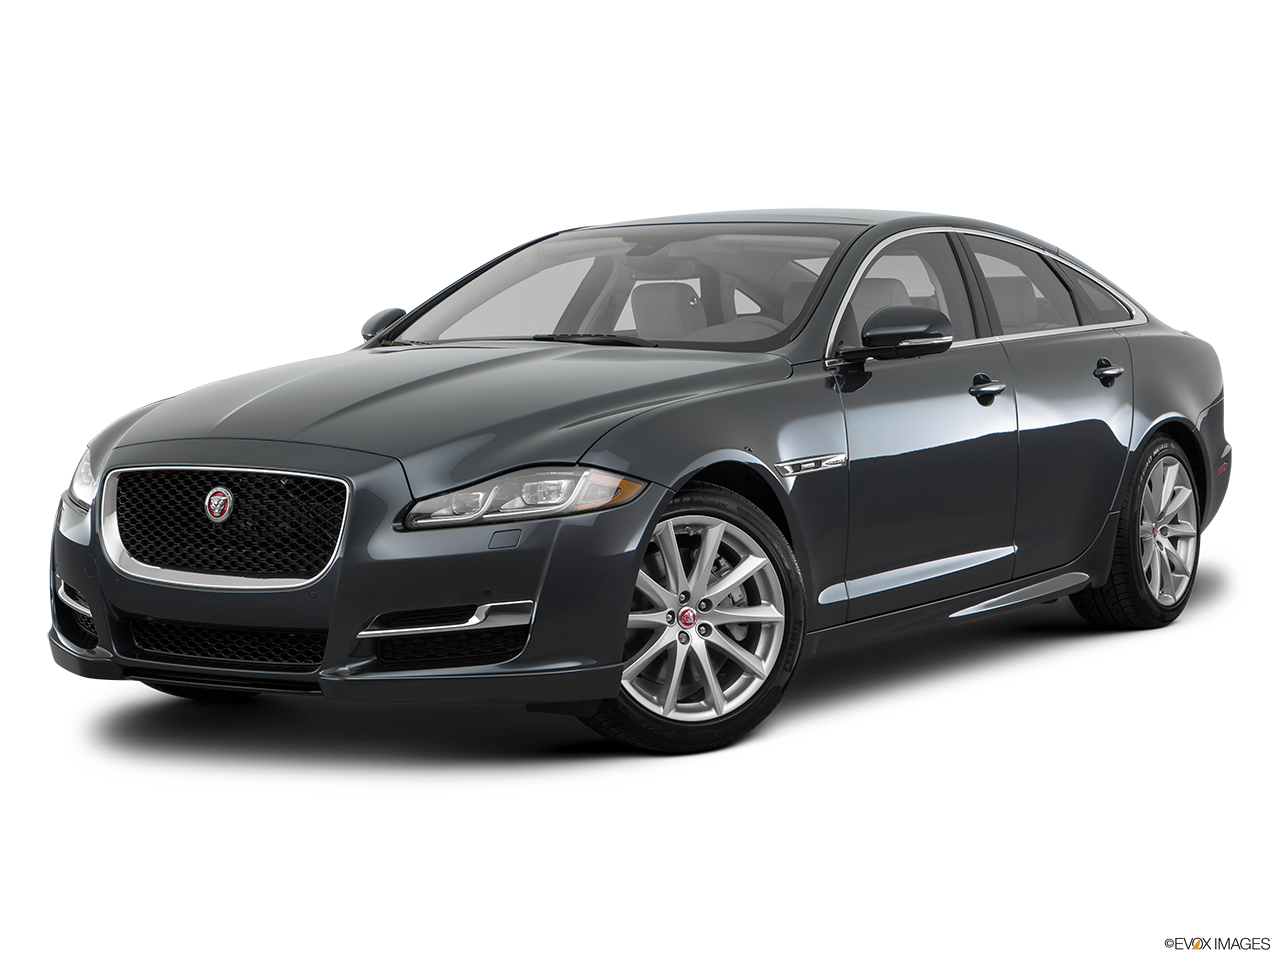 Test Drive A 2016 Jaguar XJ at Galpin Jaguar in Los Angeles